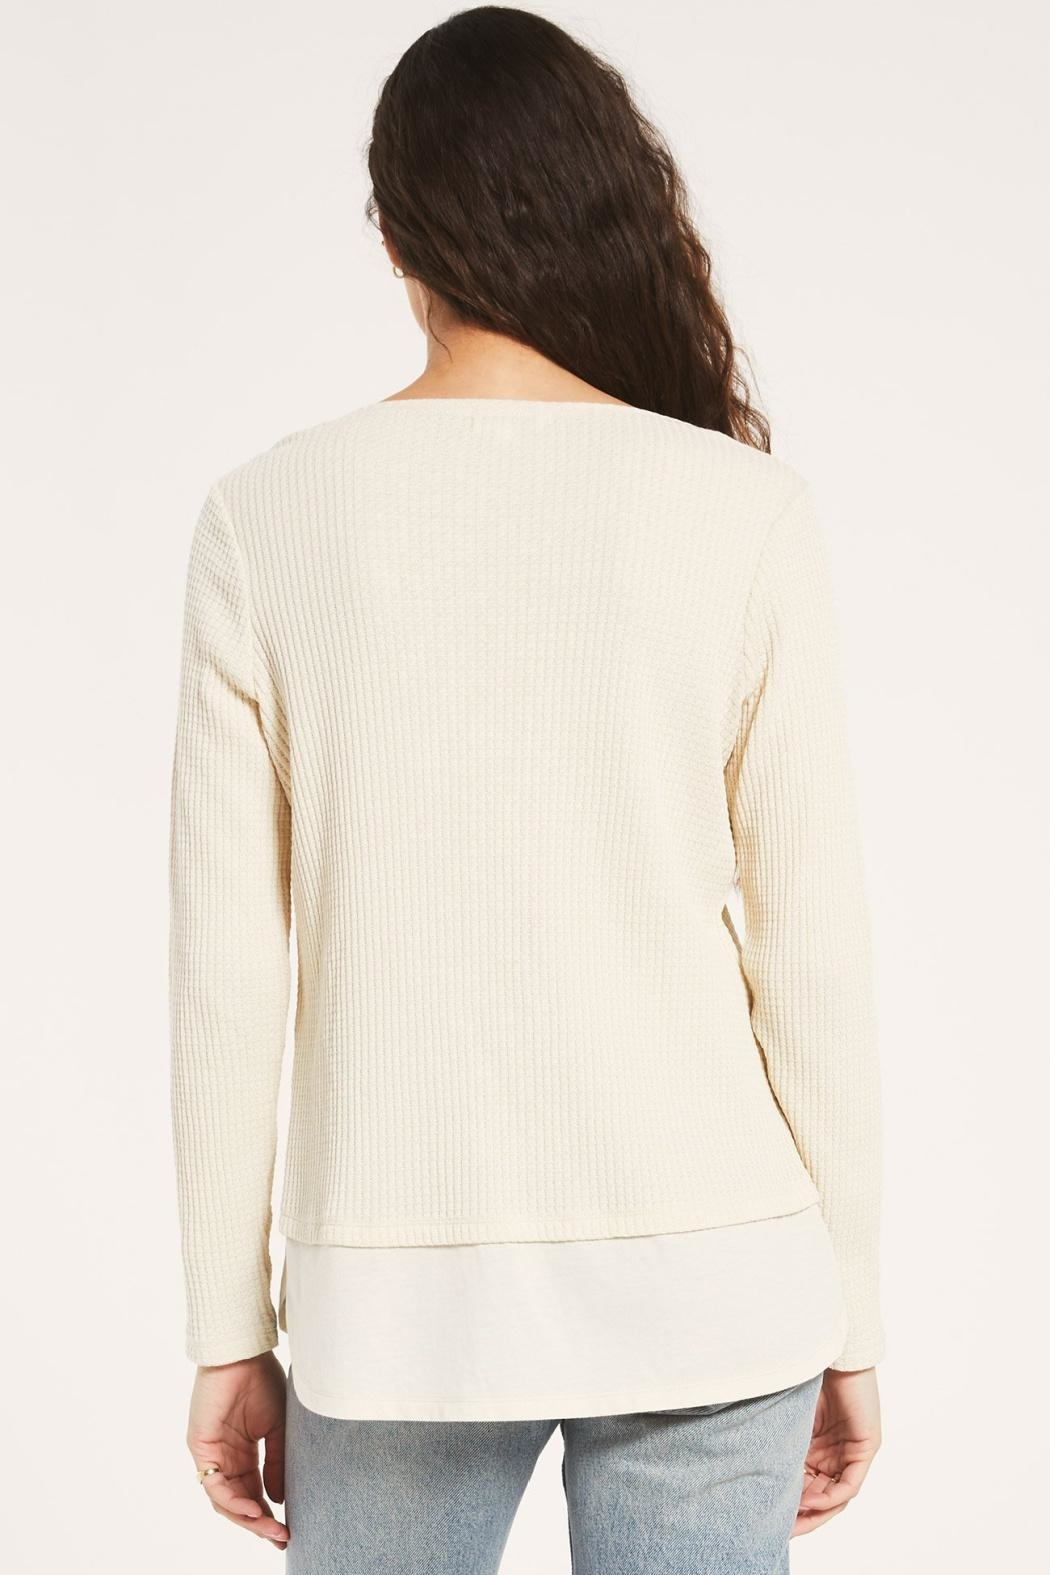 z supply Raine Thermal Tunic - Back Cropped Image